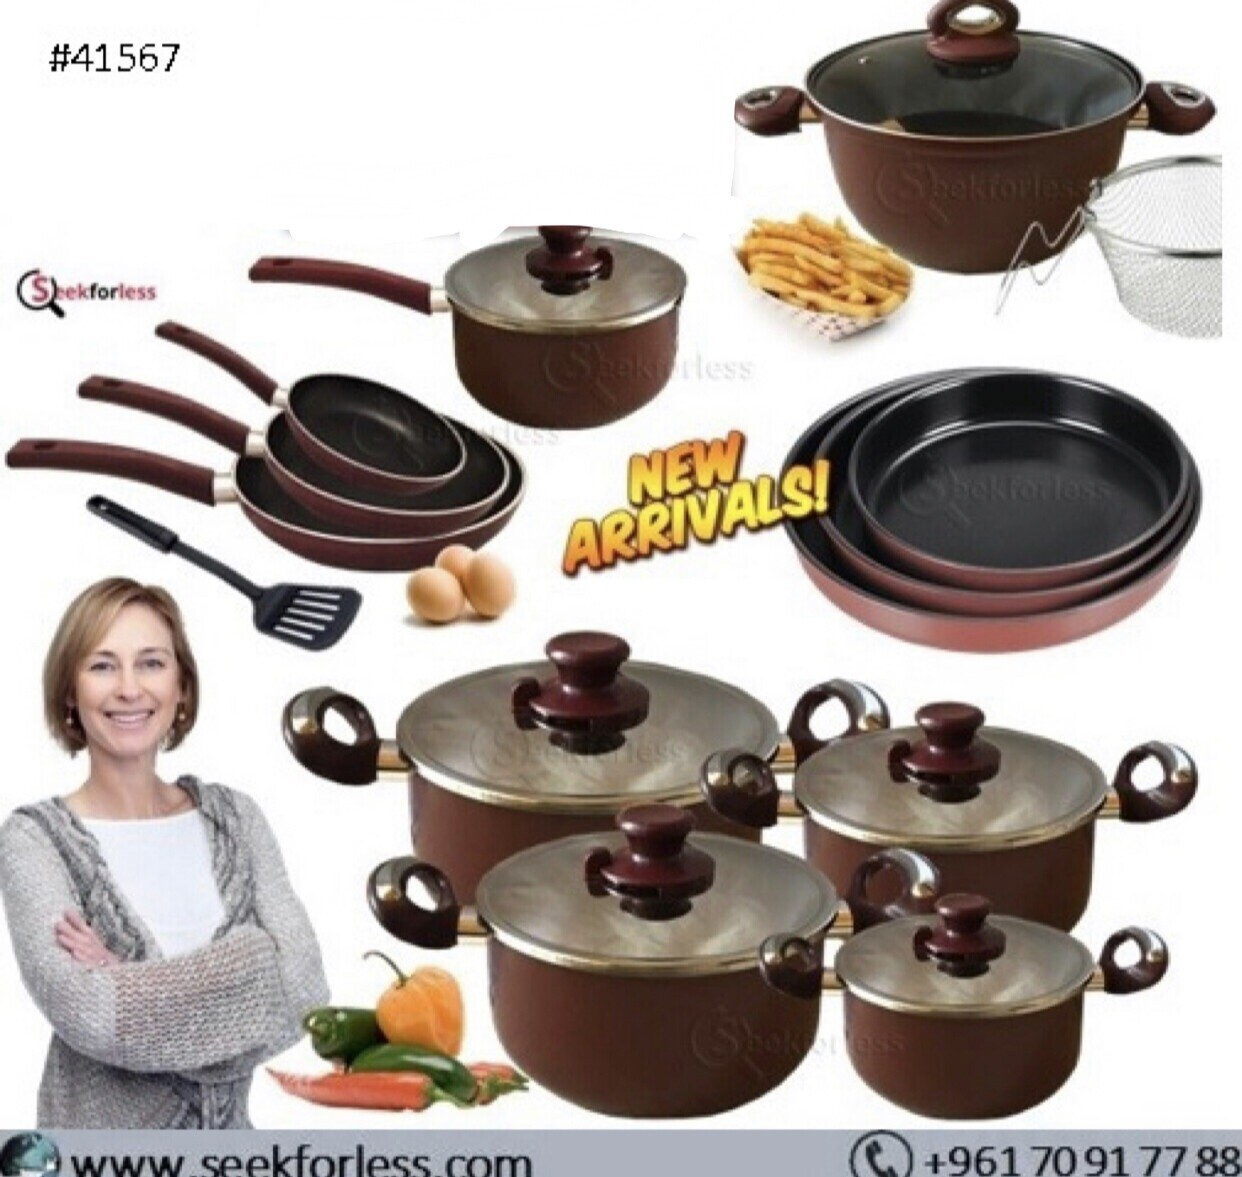 12-Pcs Cookware Offer